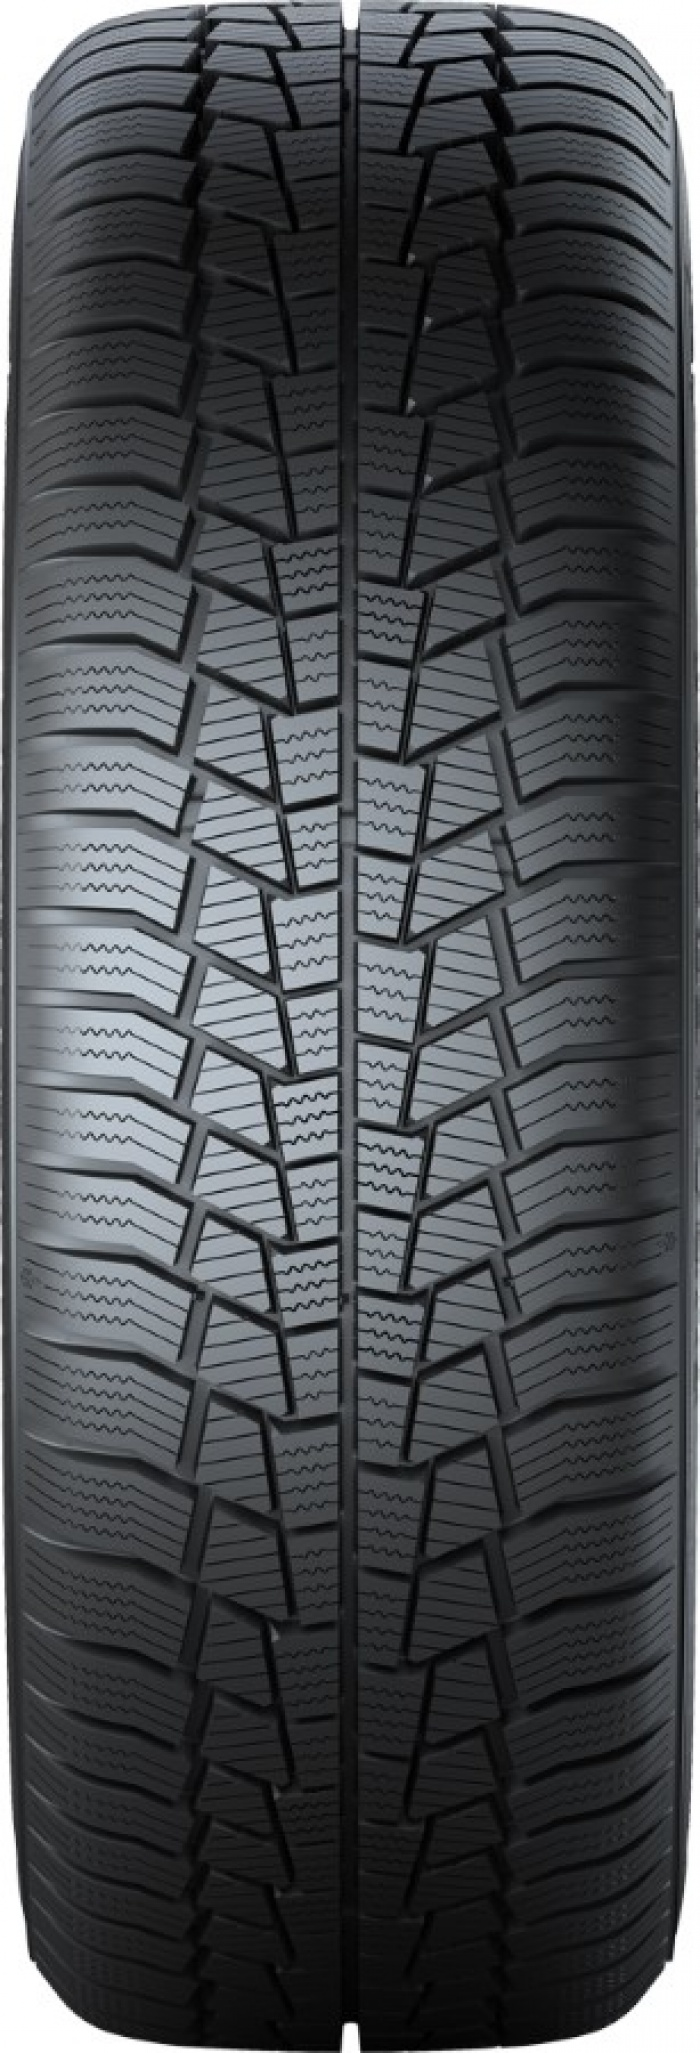 Gislaved Euro Frost 6 225/45 R17 94V  не шип